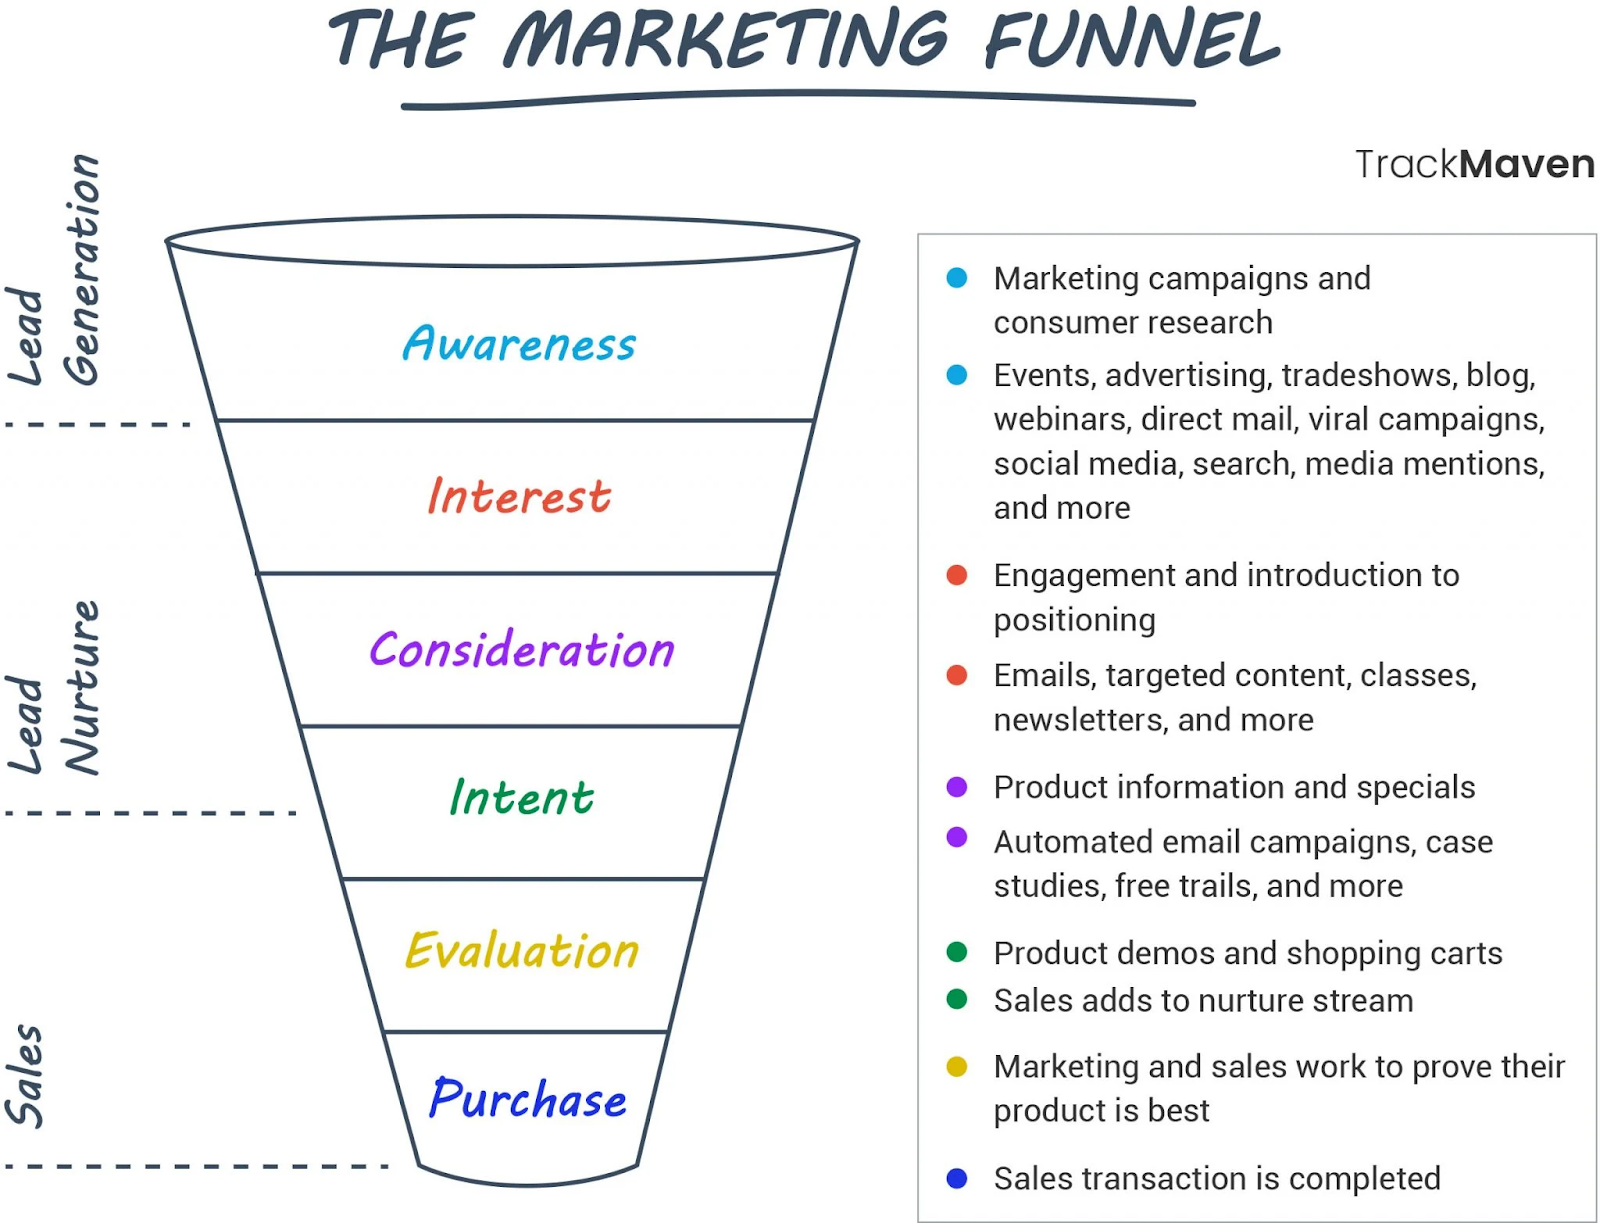 The summary of the marketing funnel.